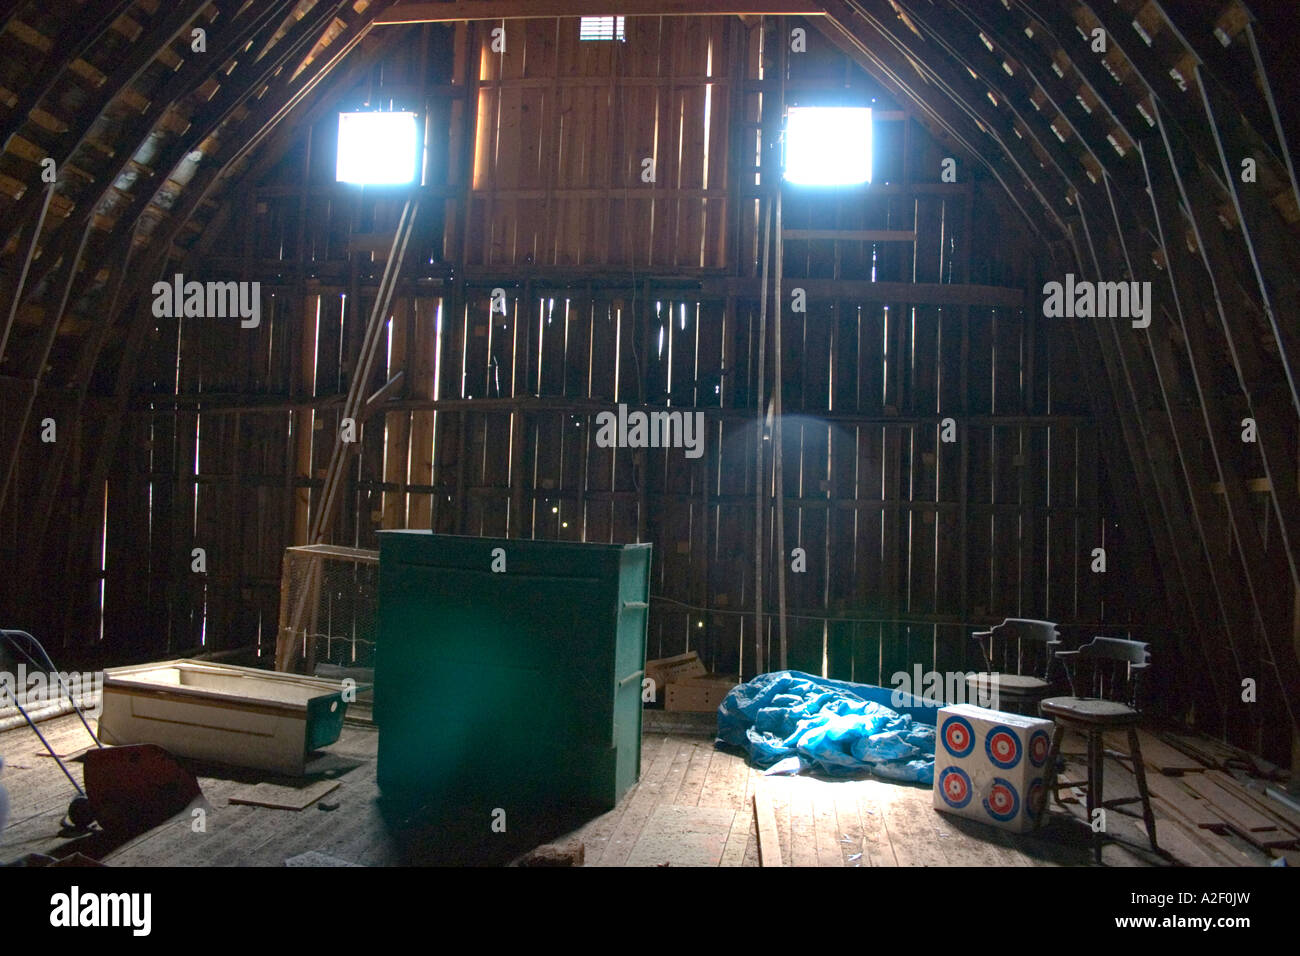 Bar chairs beside targets in barn attic. Blue River Wisconsin USA Stock Photo